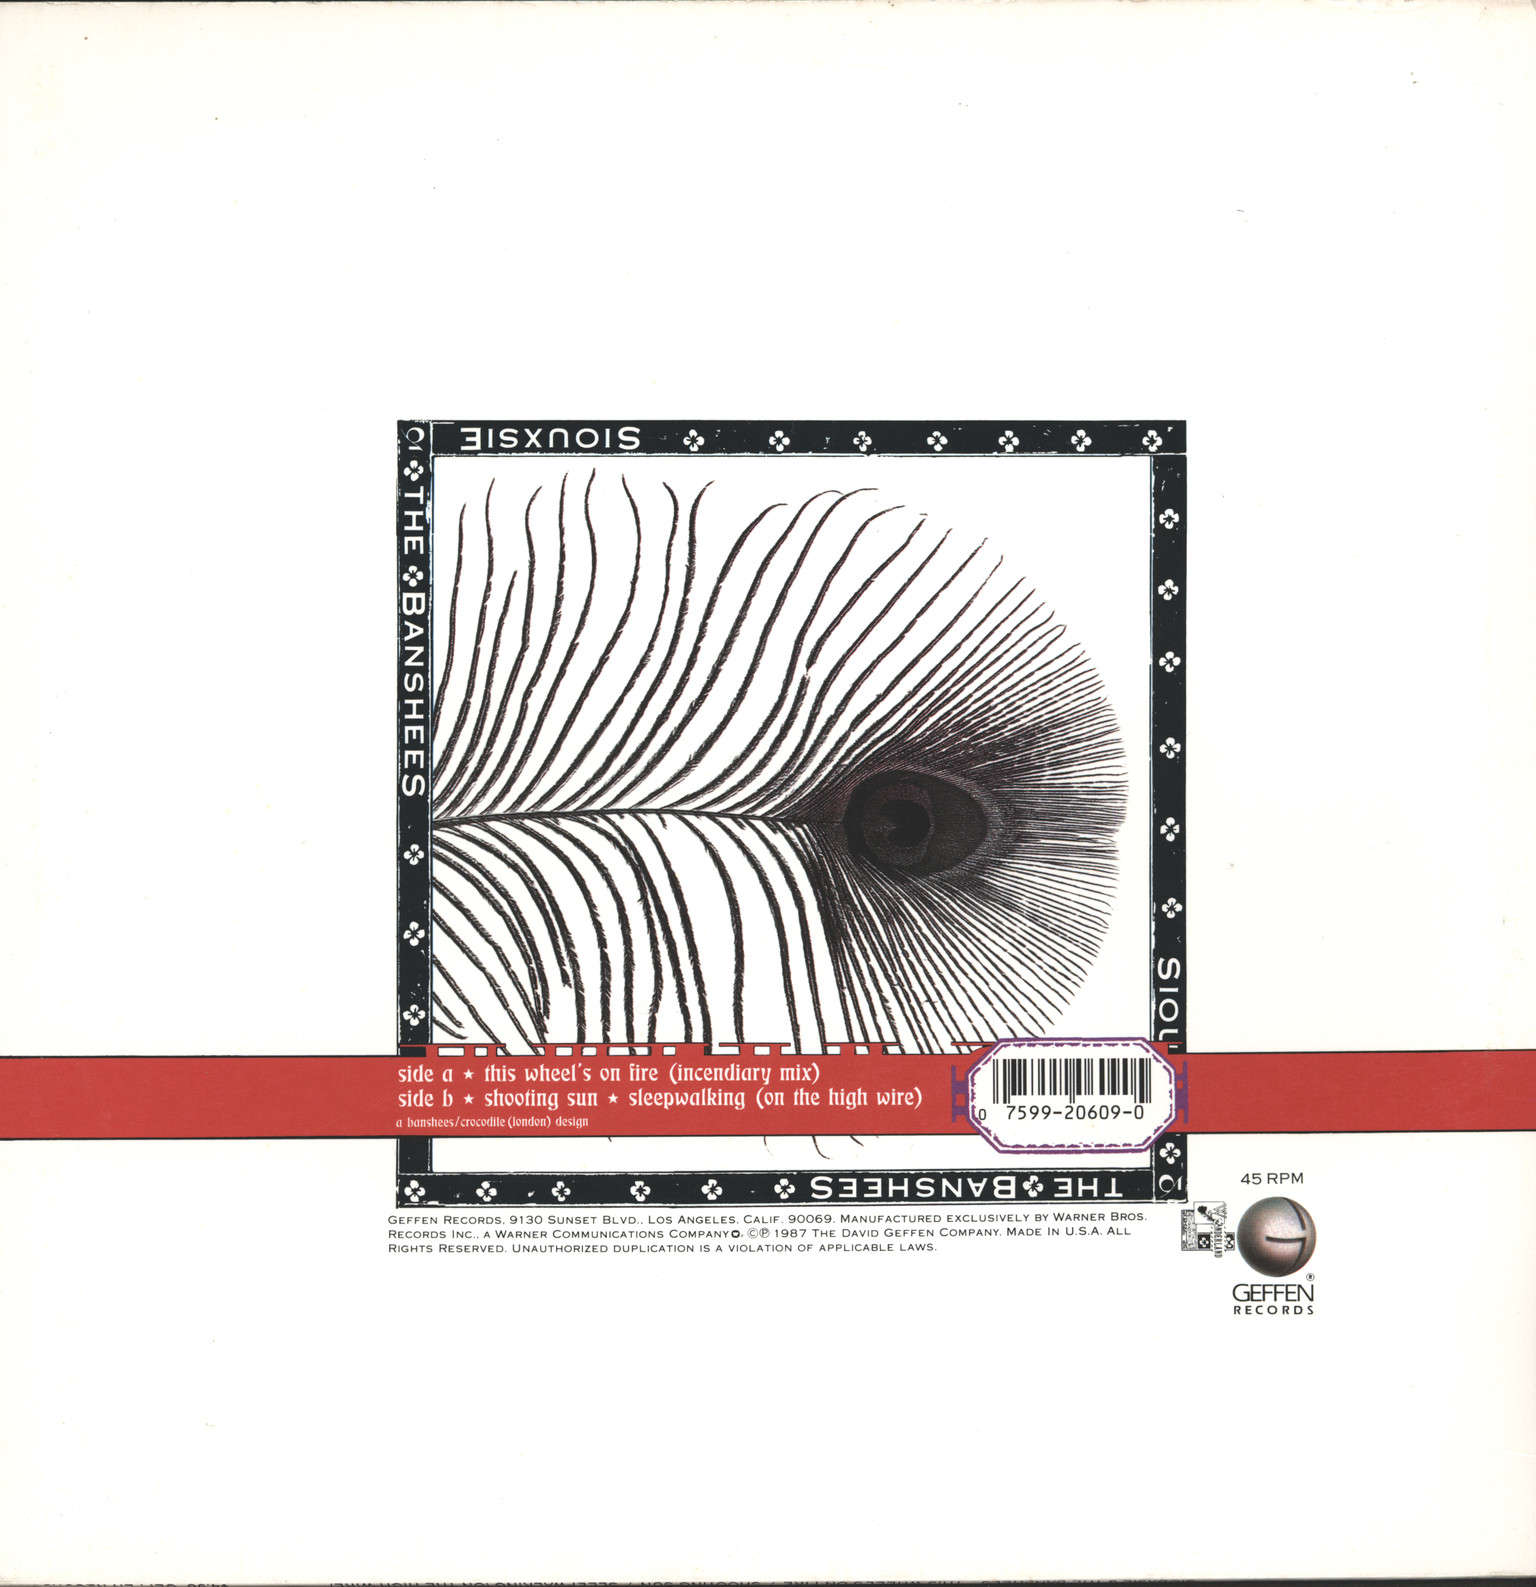 "Siouxsie & the Banshees: This Wheel's On Fire, 12"" Maxi Single (Vinyl)"